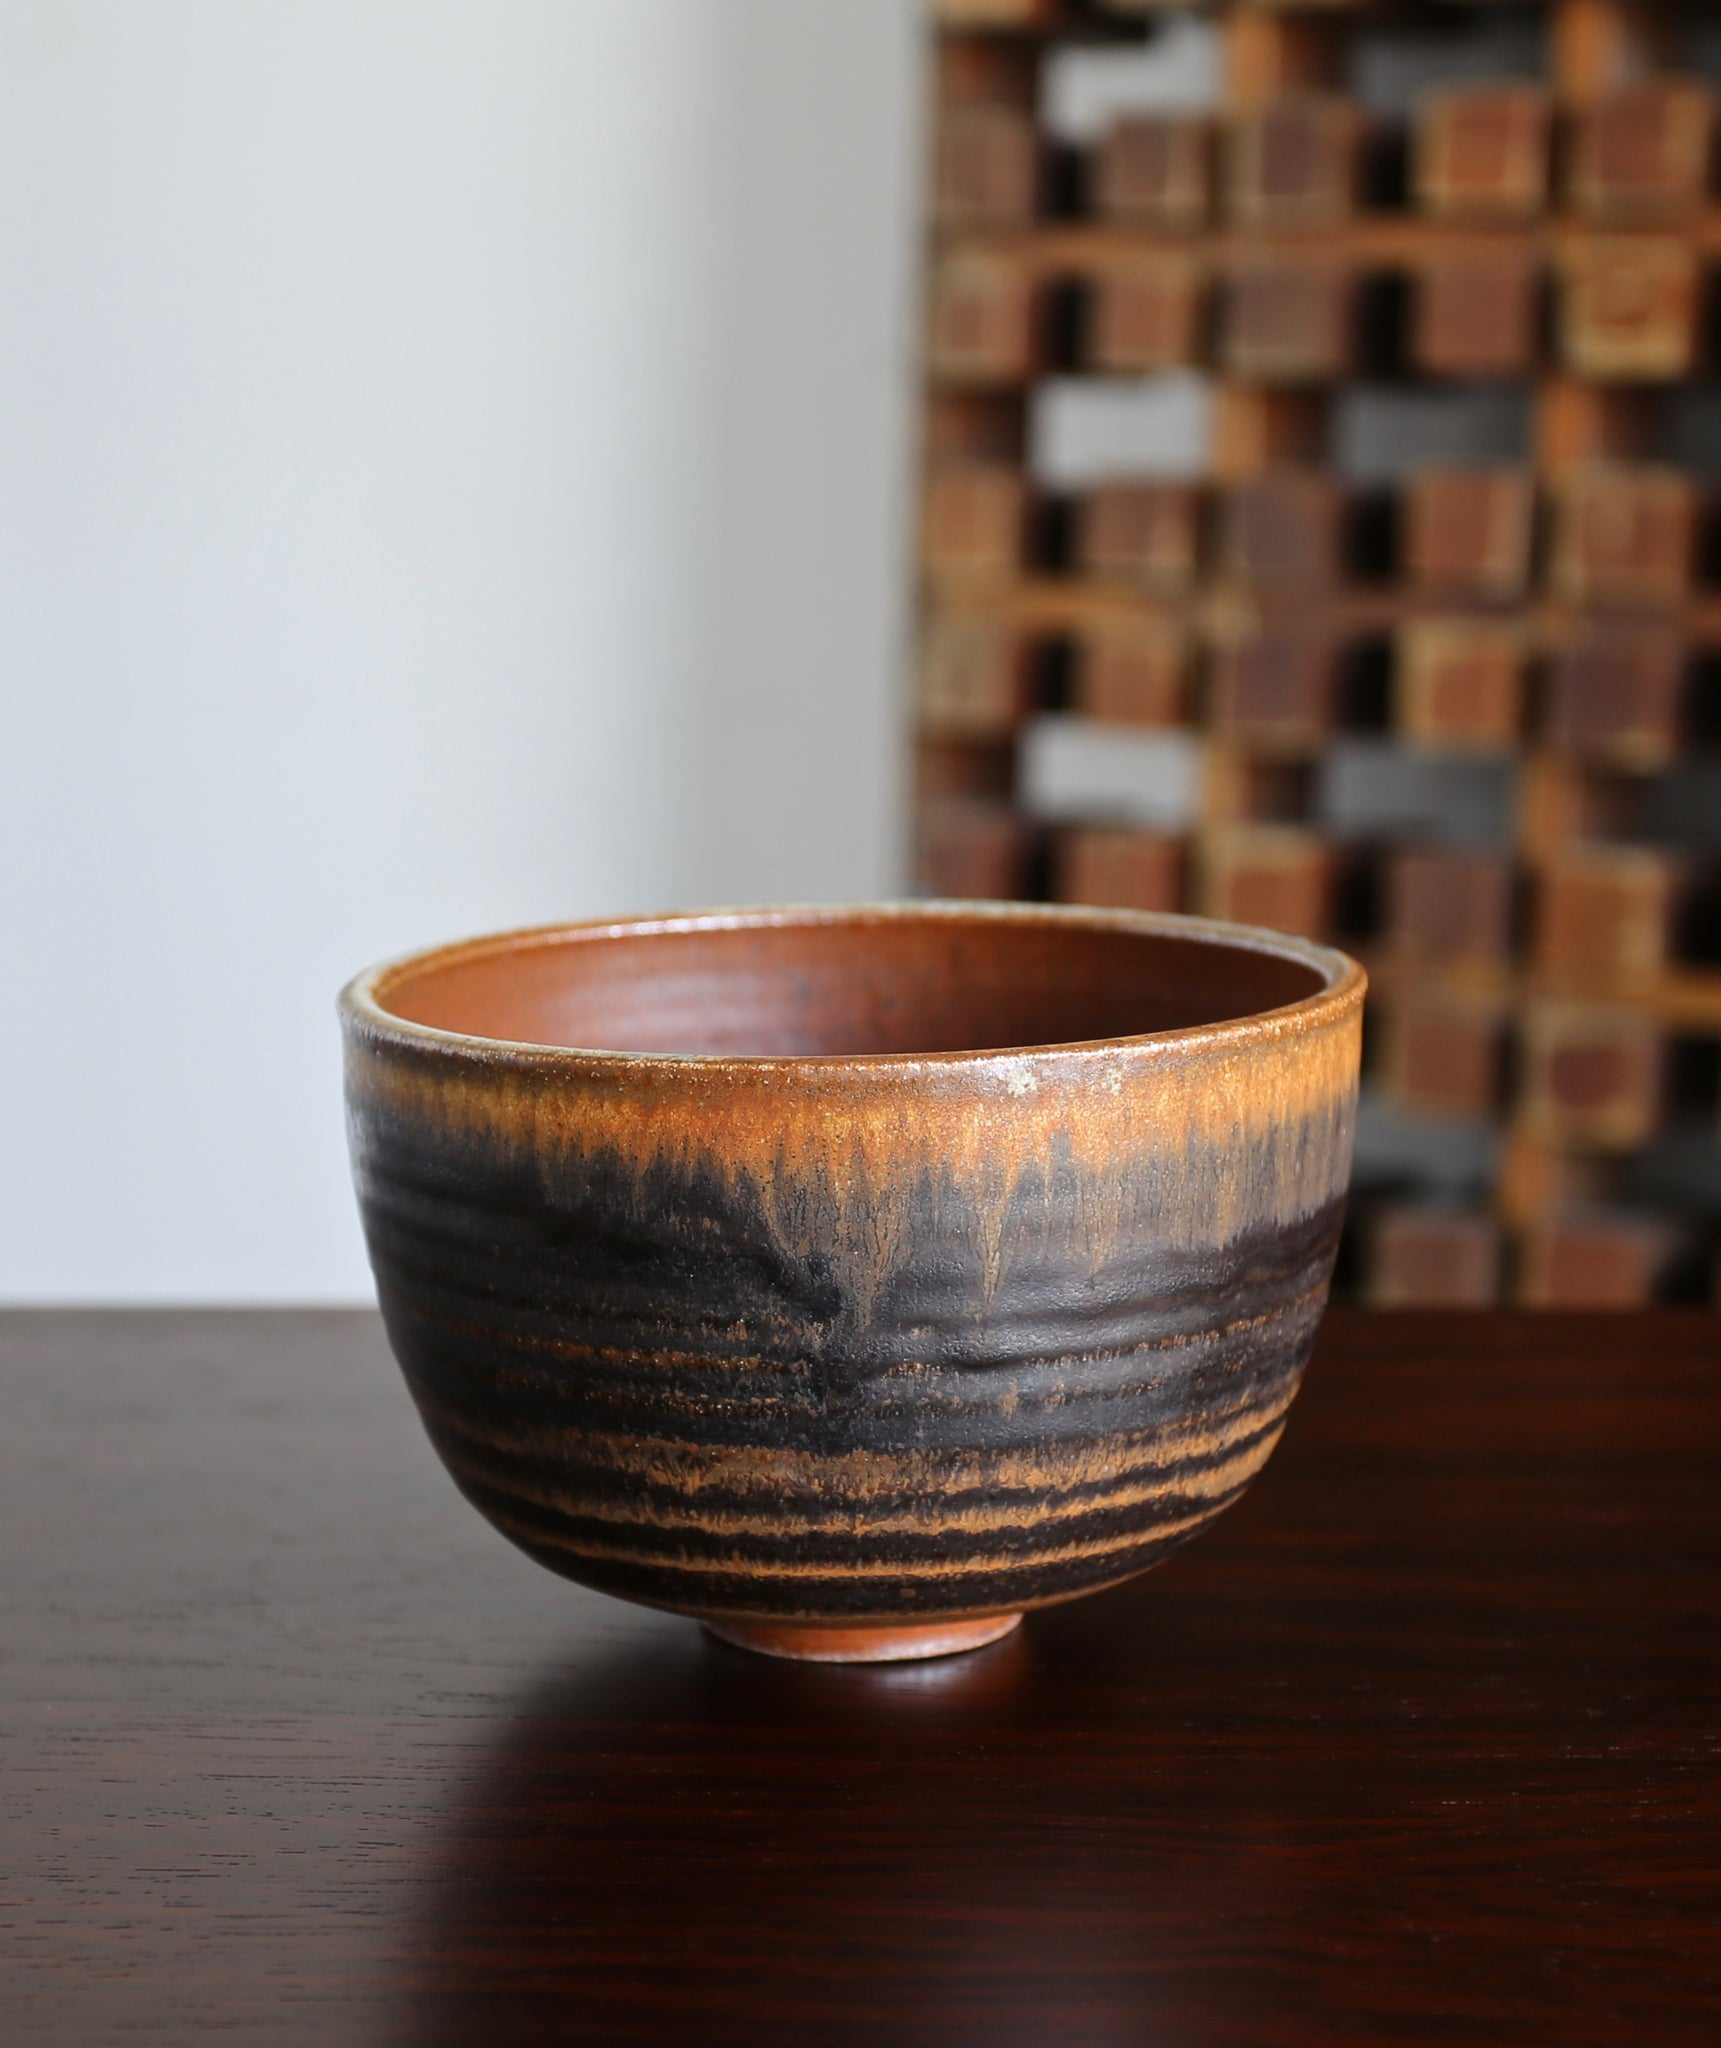 = SOLD = Tim Keenan Ceramic Bowl